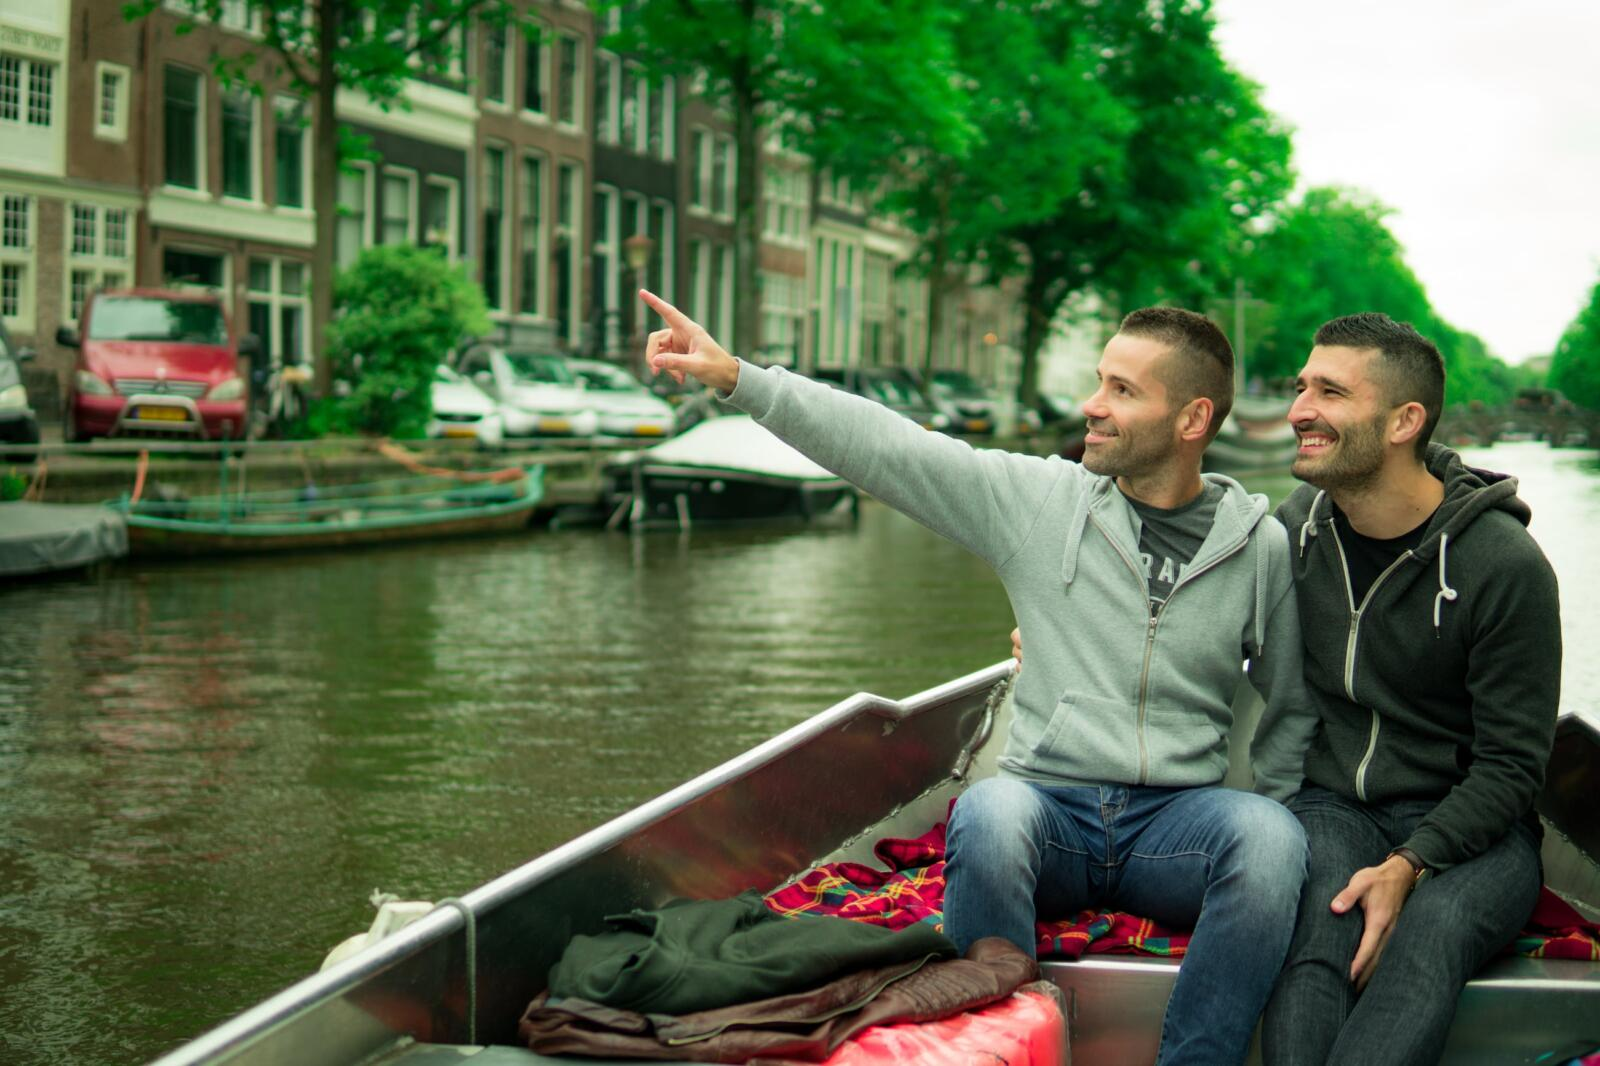 Gay couple in Amsterdam romantic boat ride